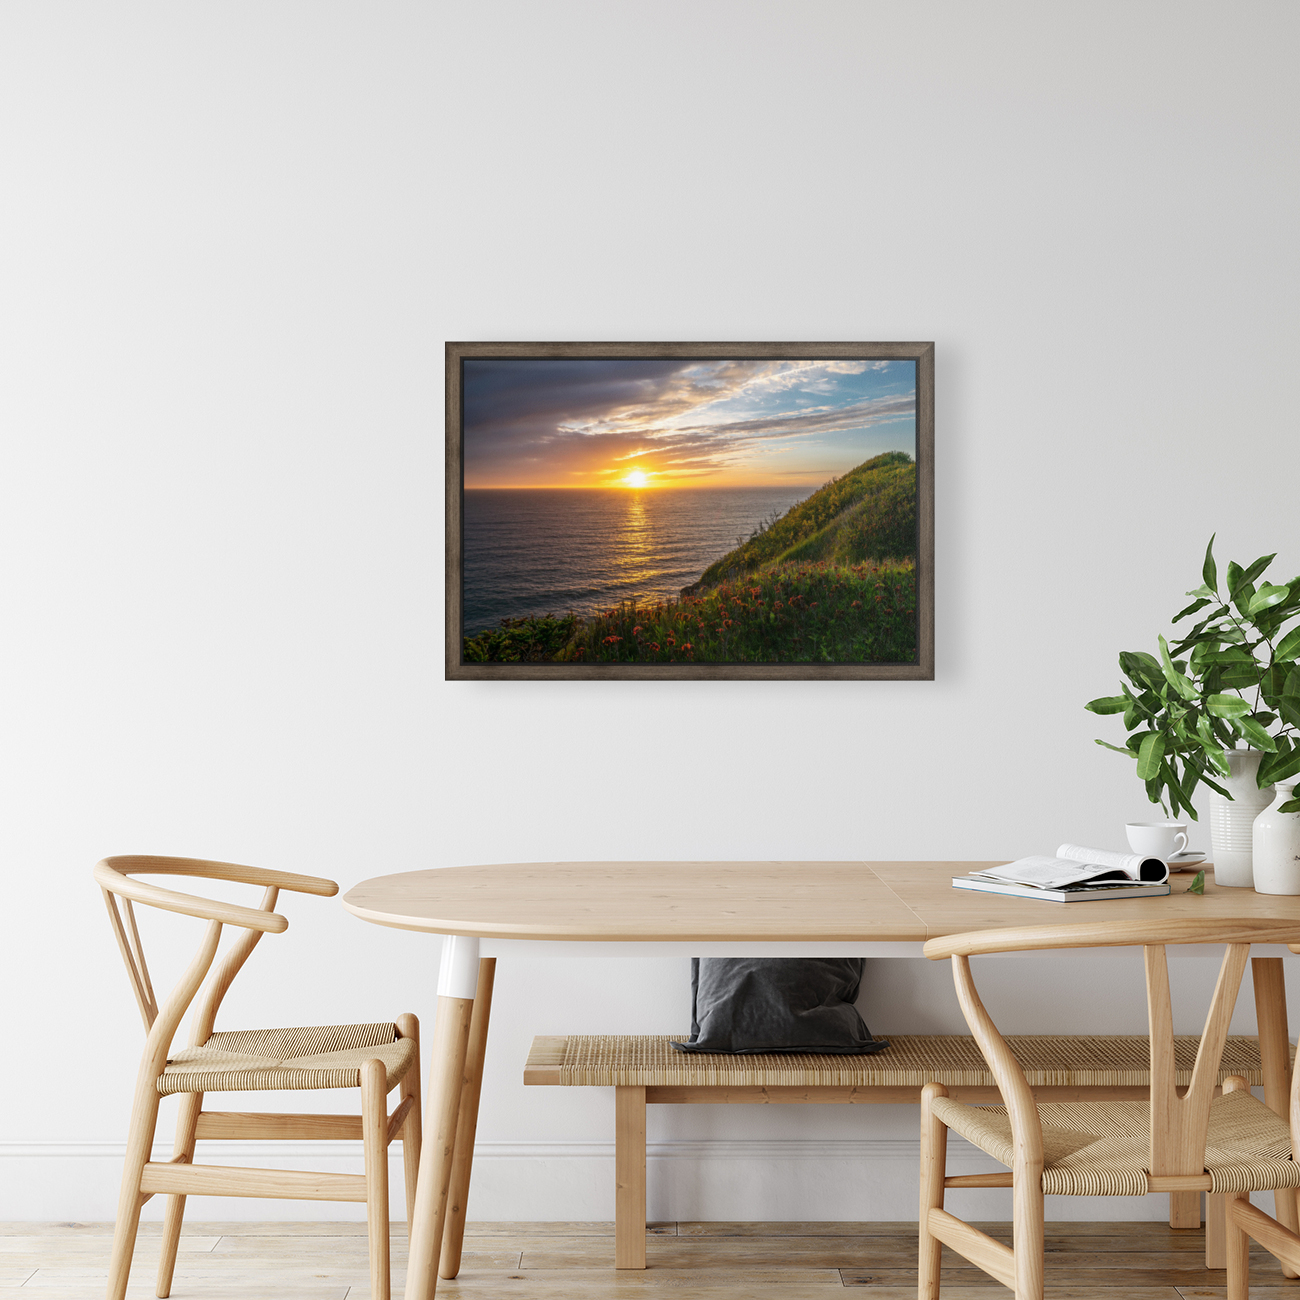 Glorious Light with Floating Frame